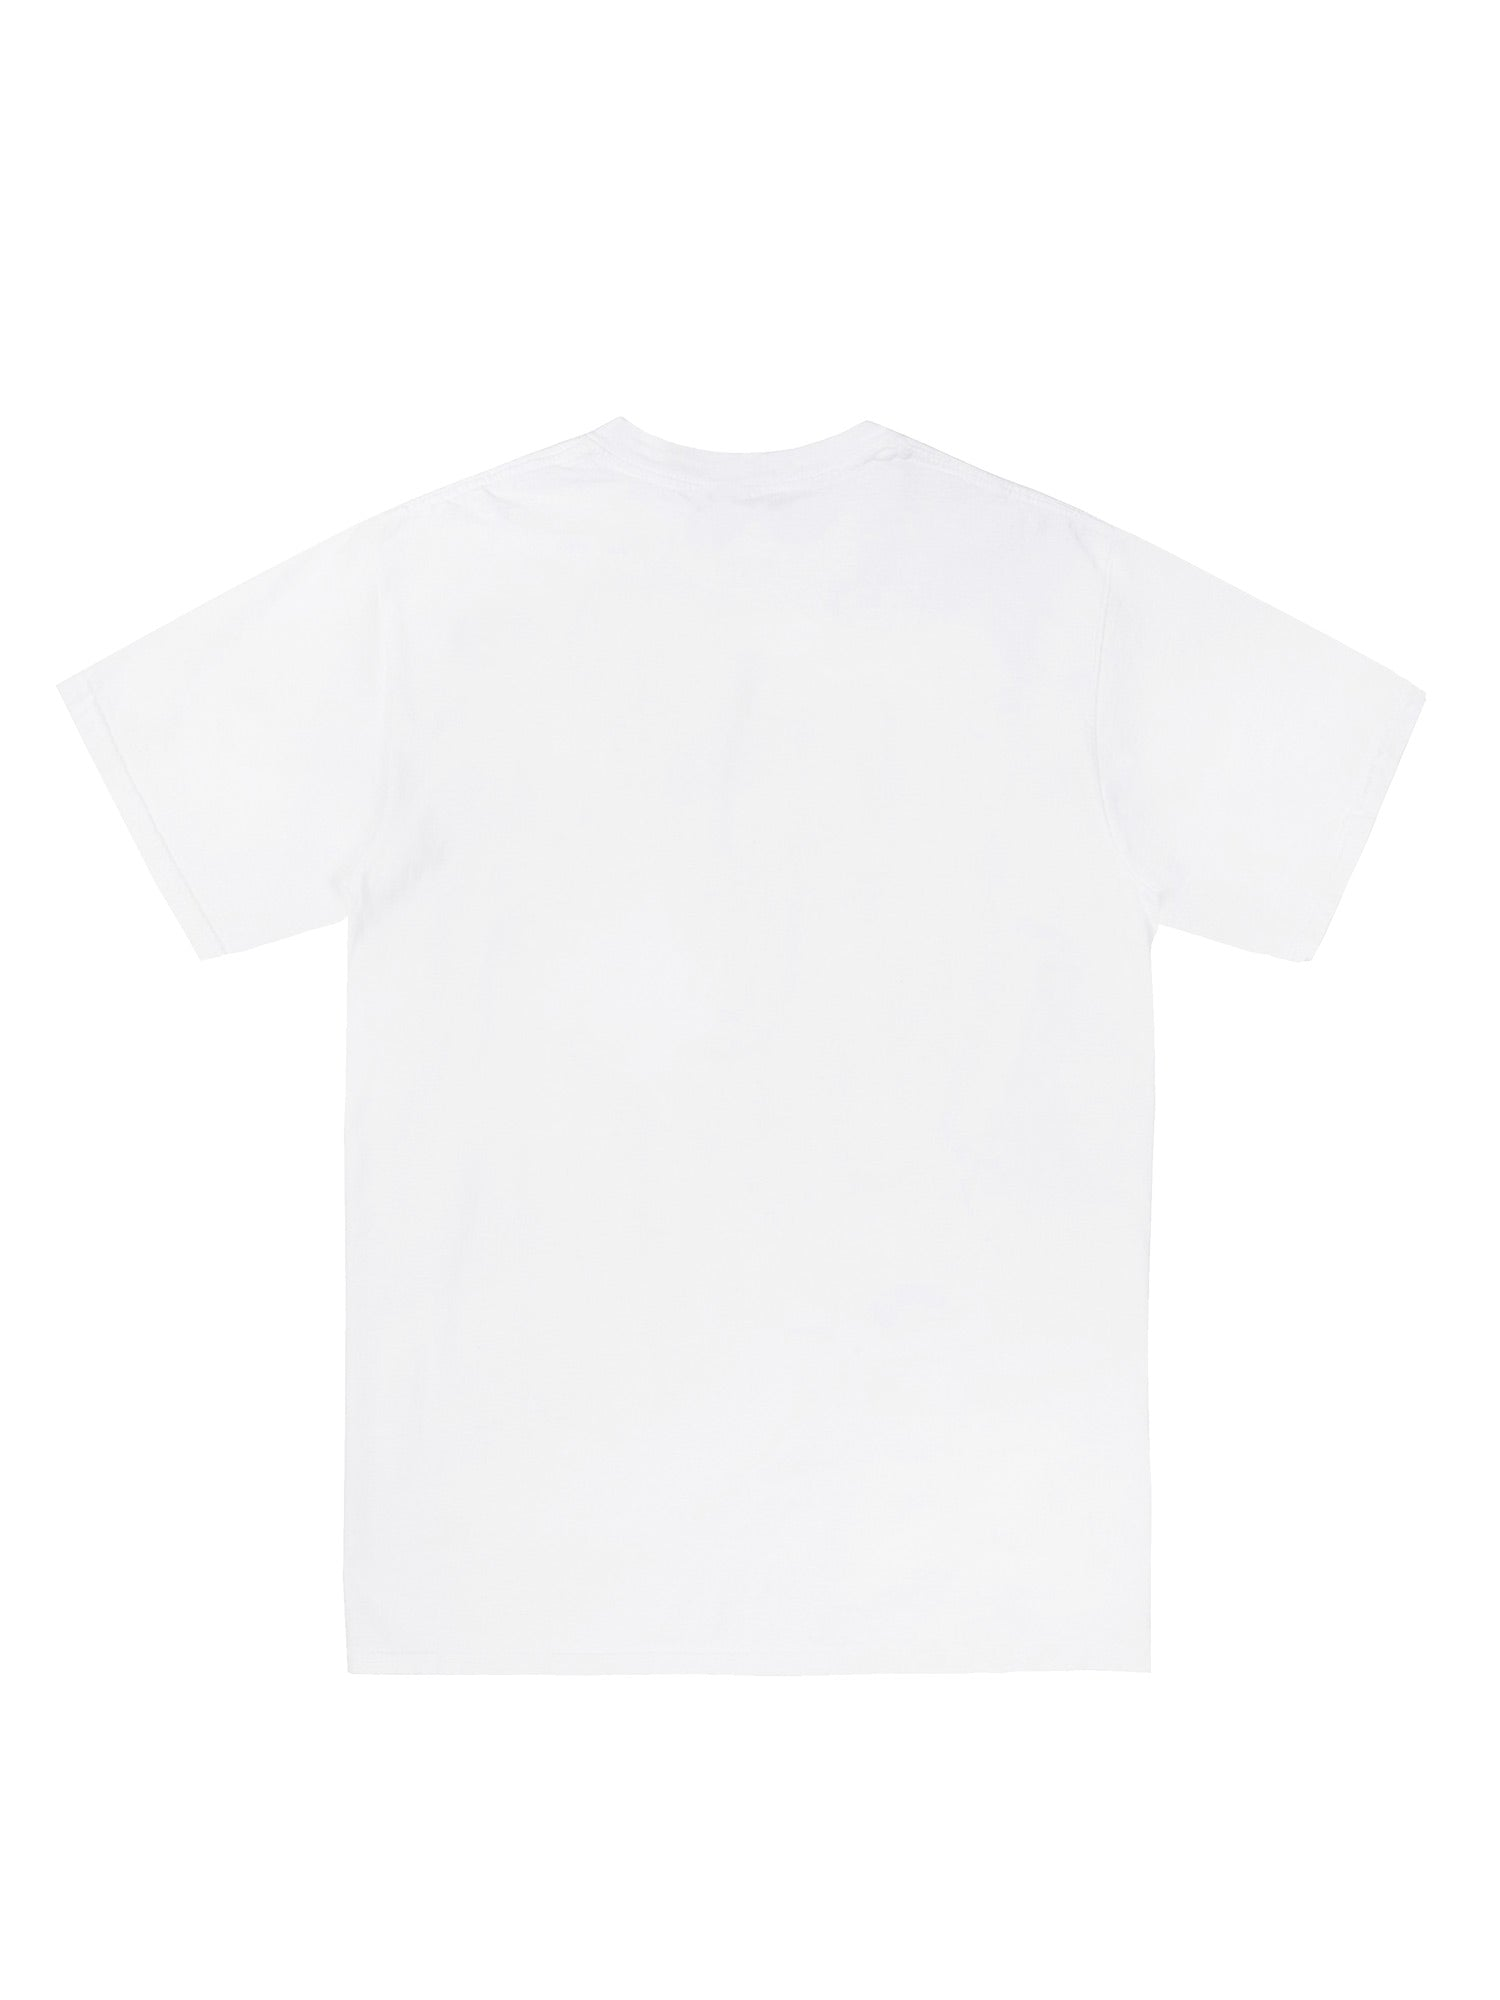 Post Post Post Tee, White